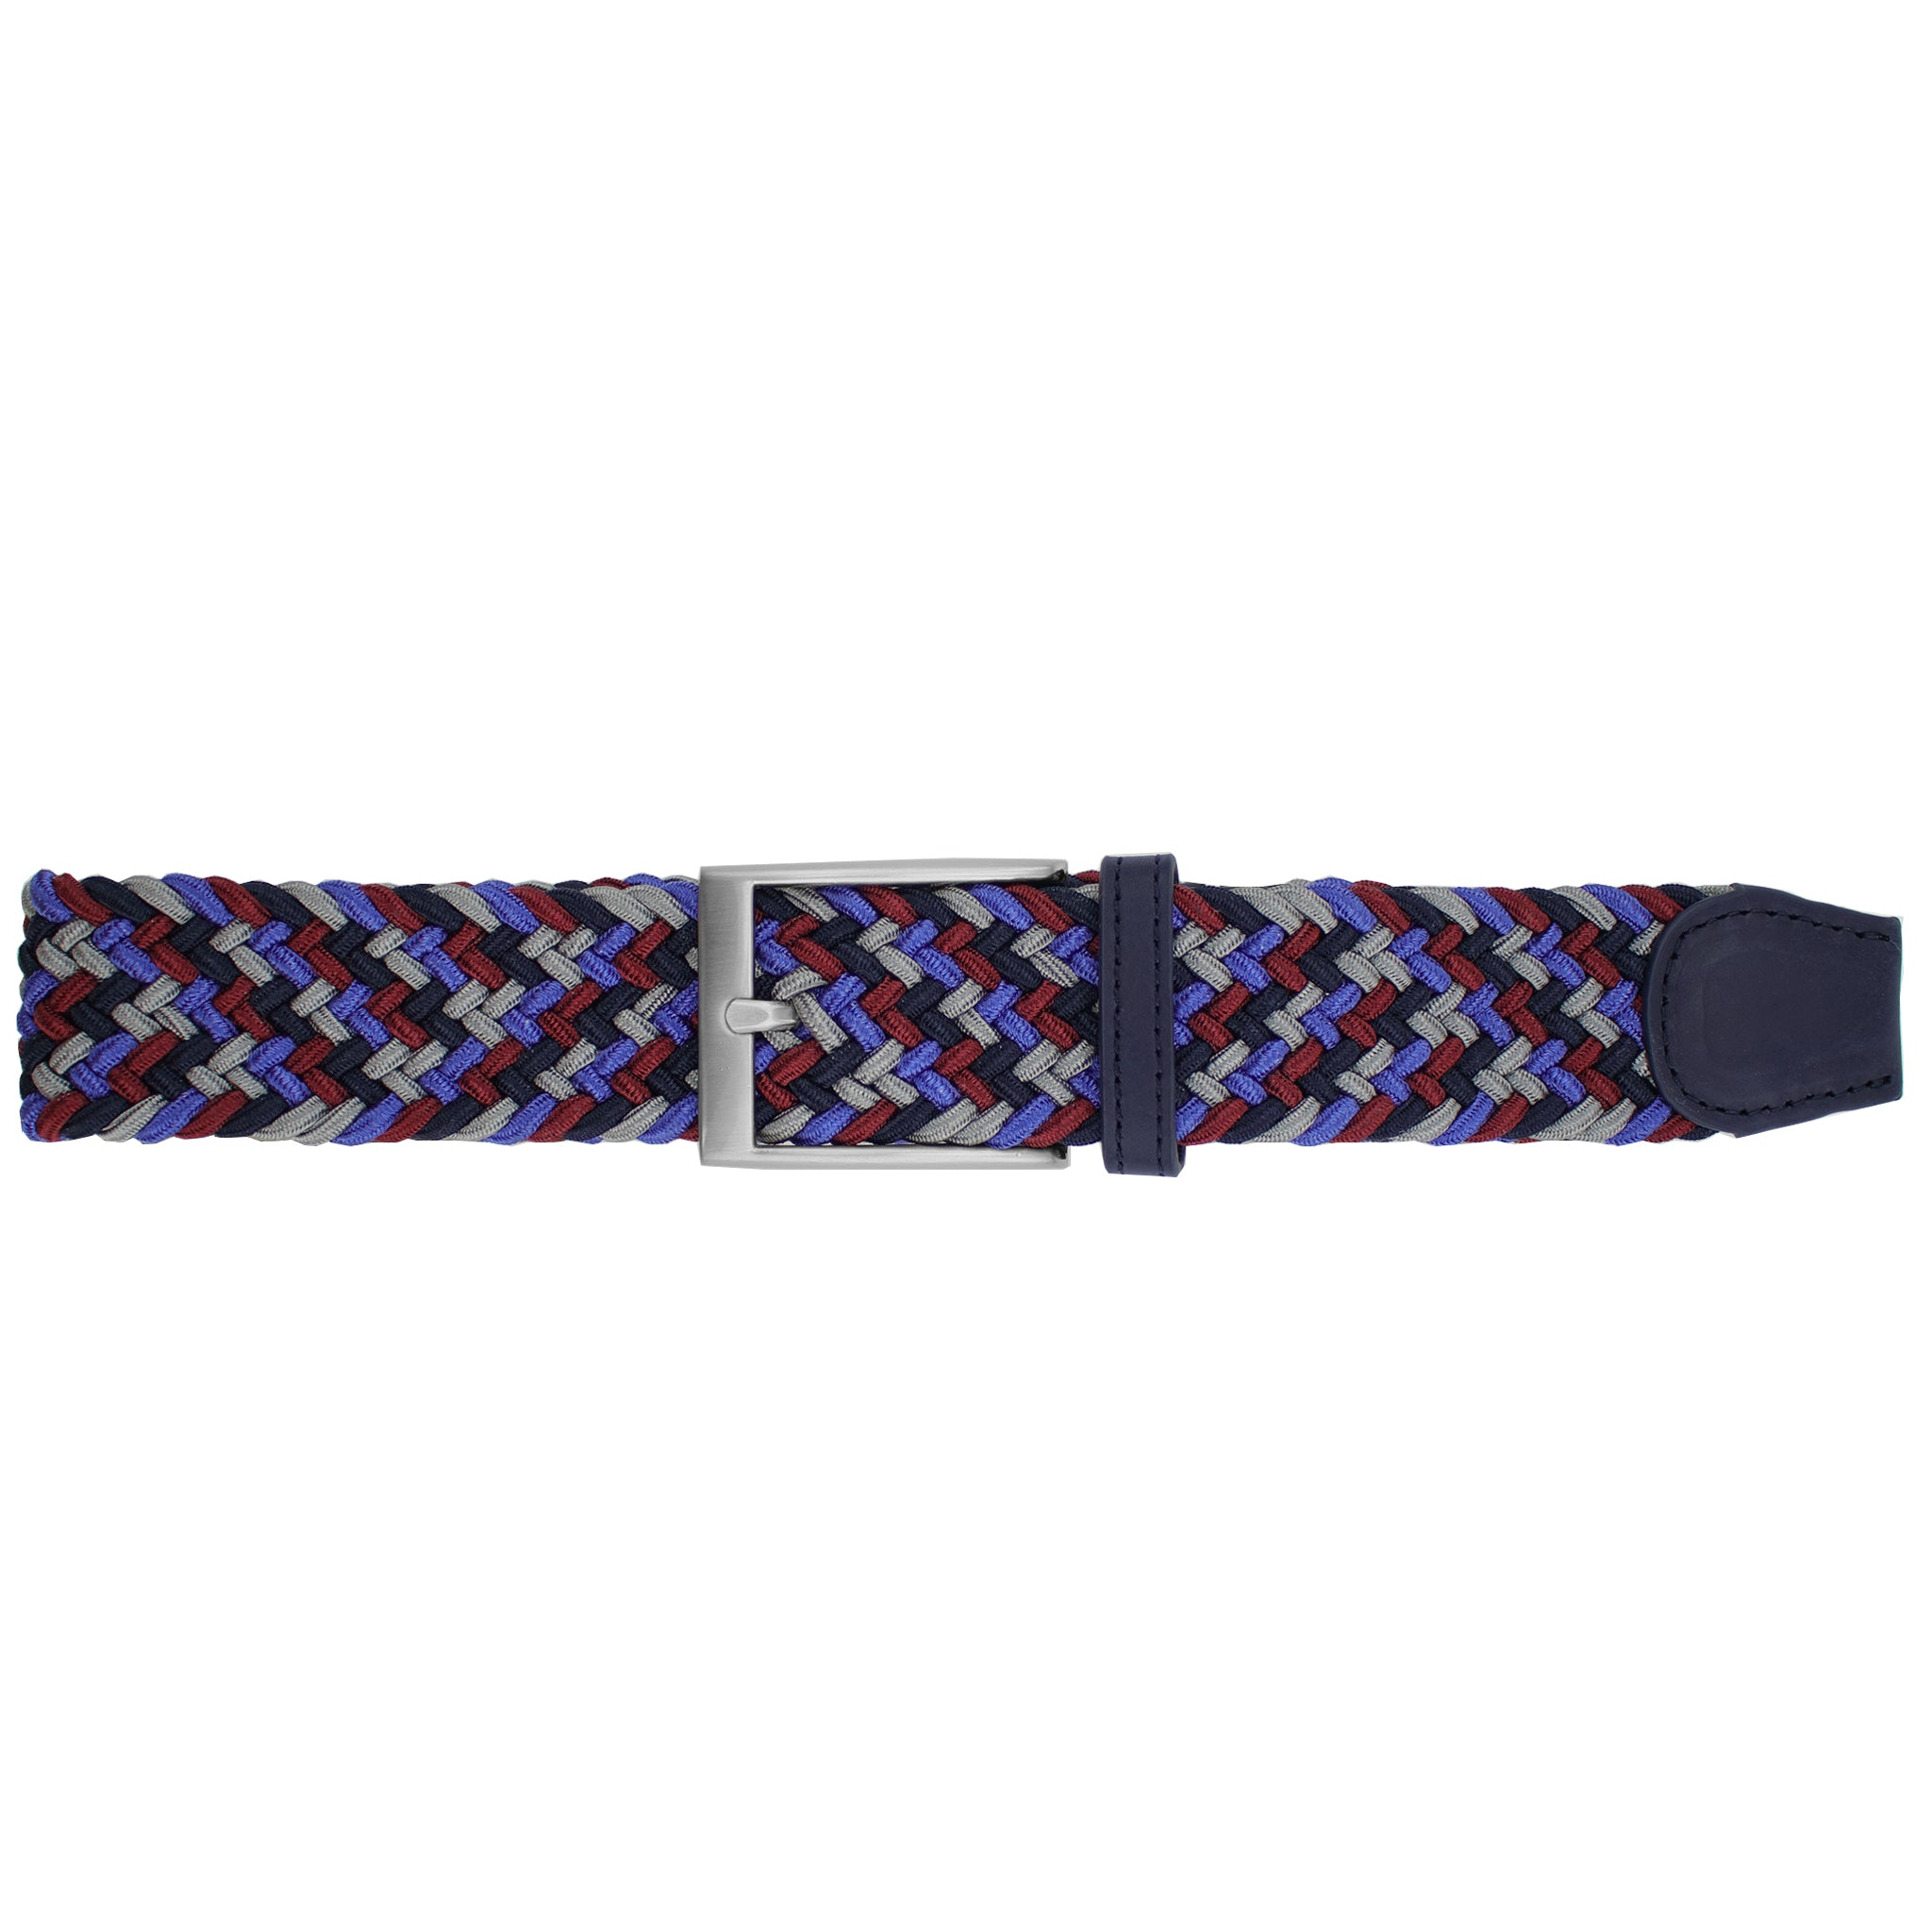 Cabernet, Navy, Royal Blue, & Grey Elastic Belt